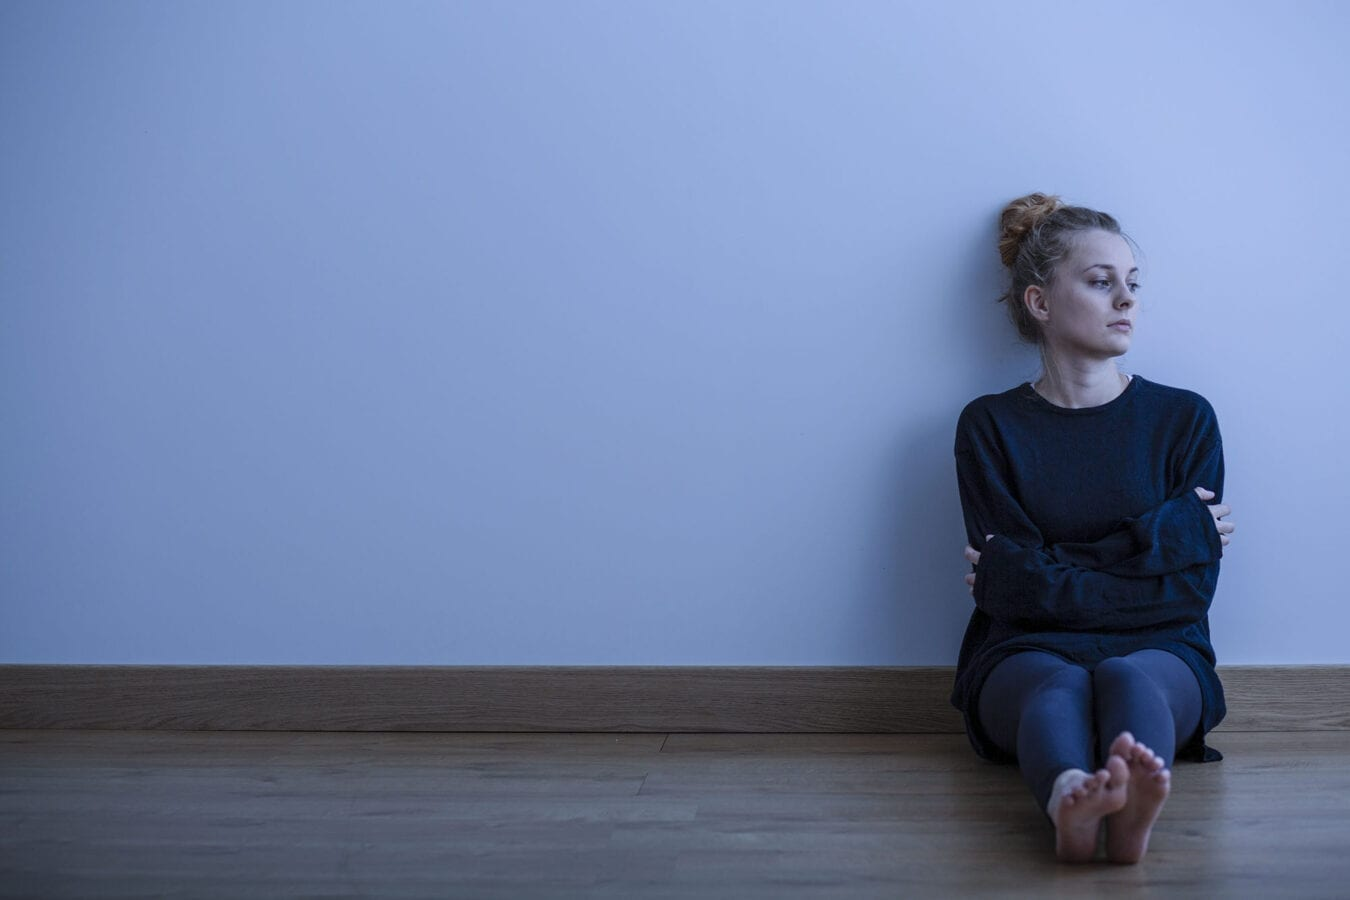 Picture of a sad teenage girl suffering from loneliness, sitting